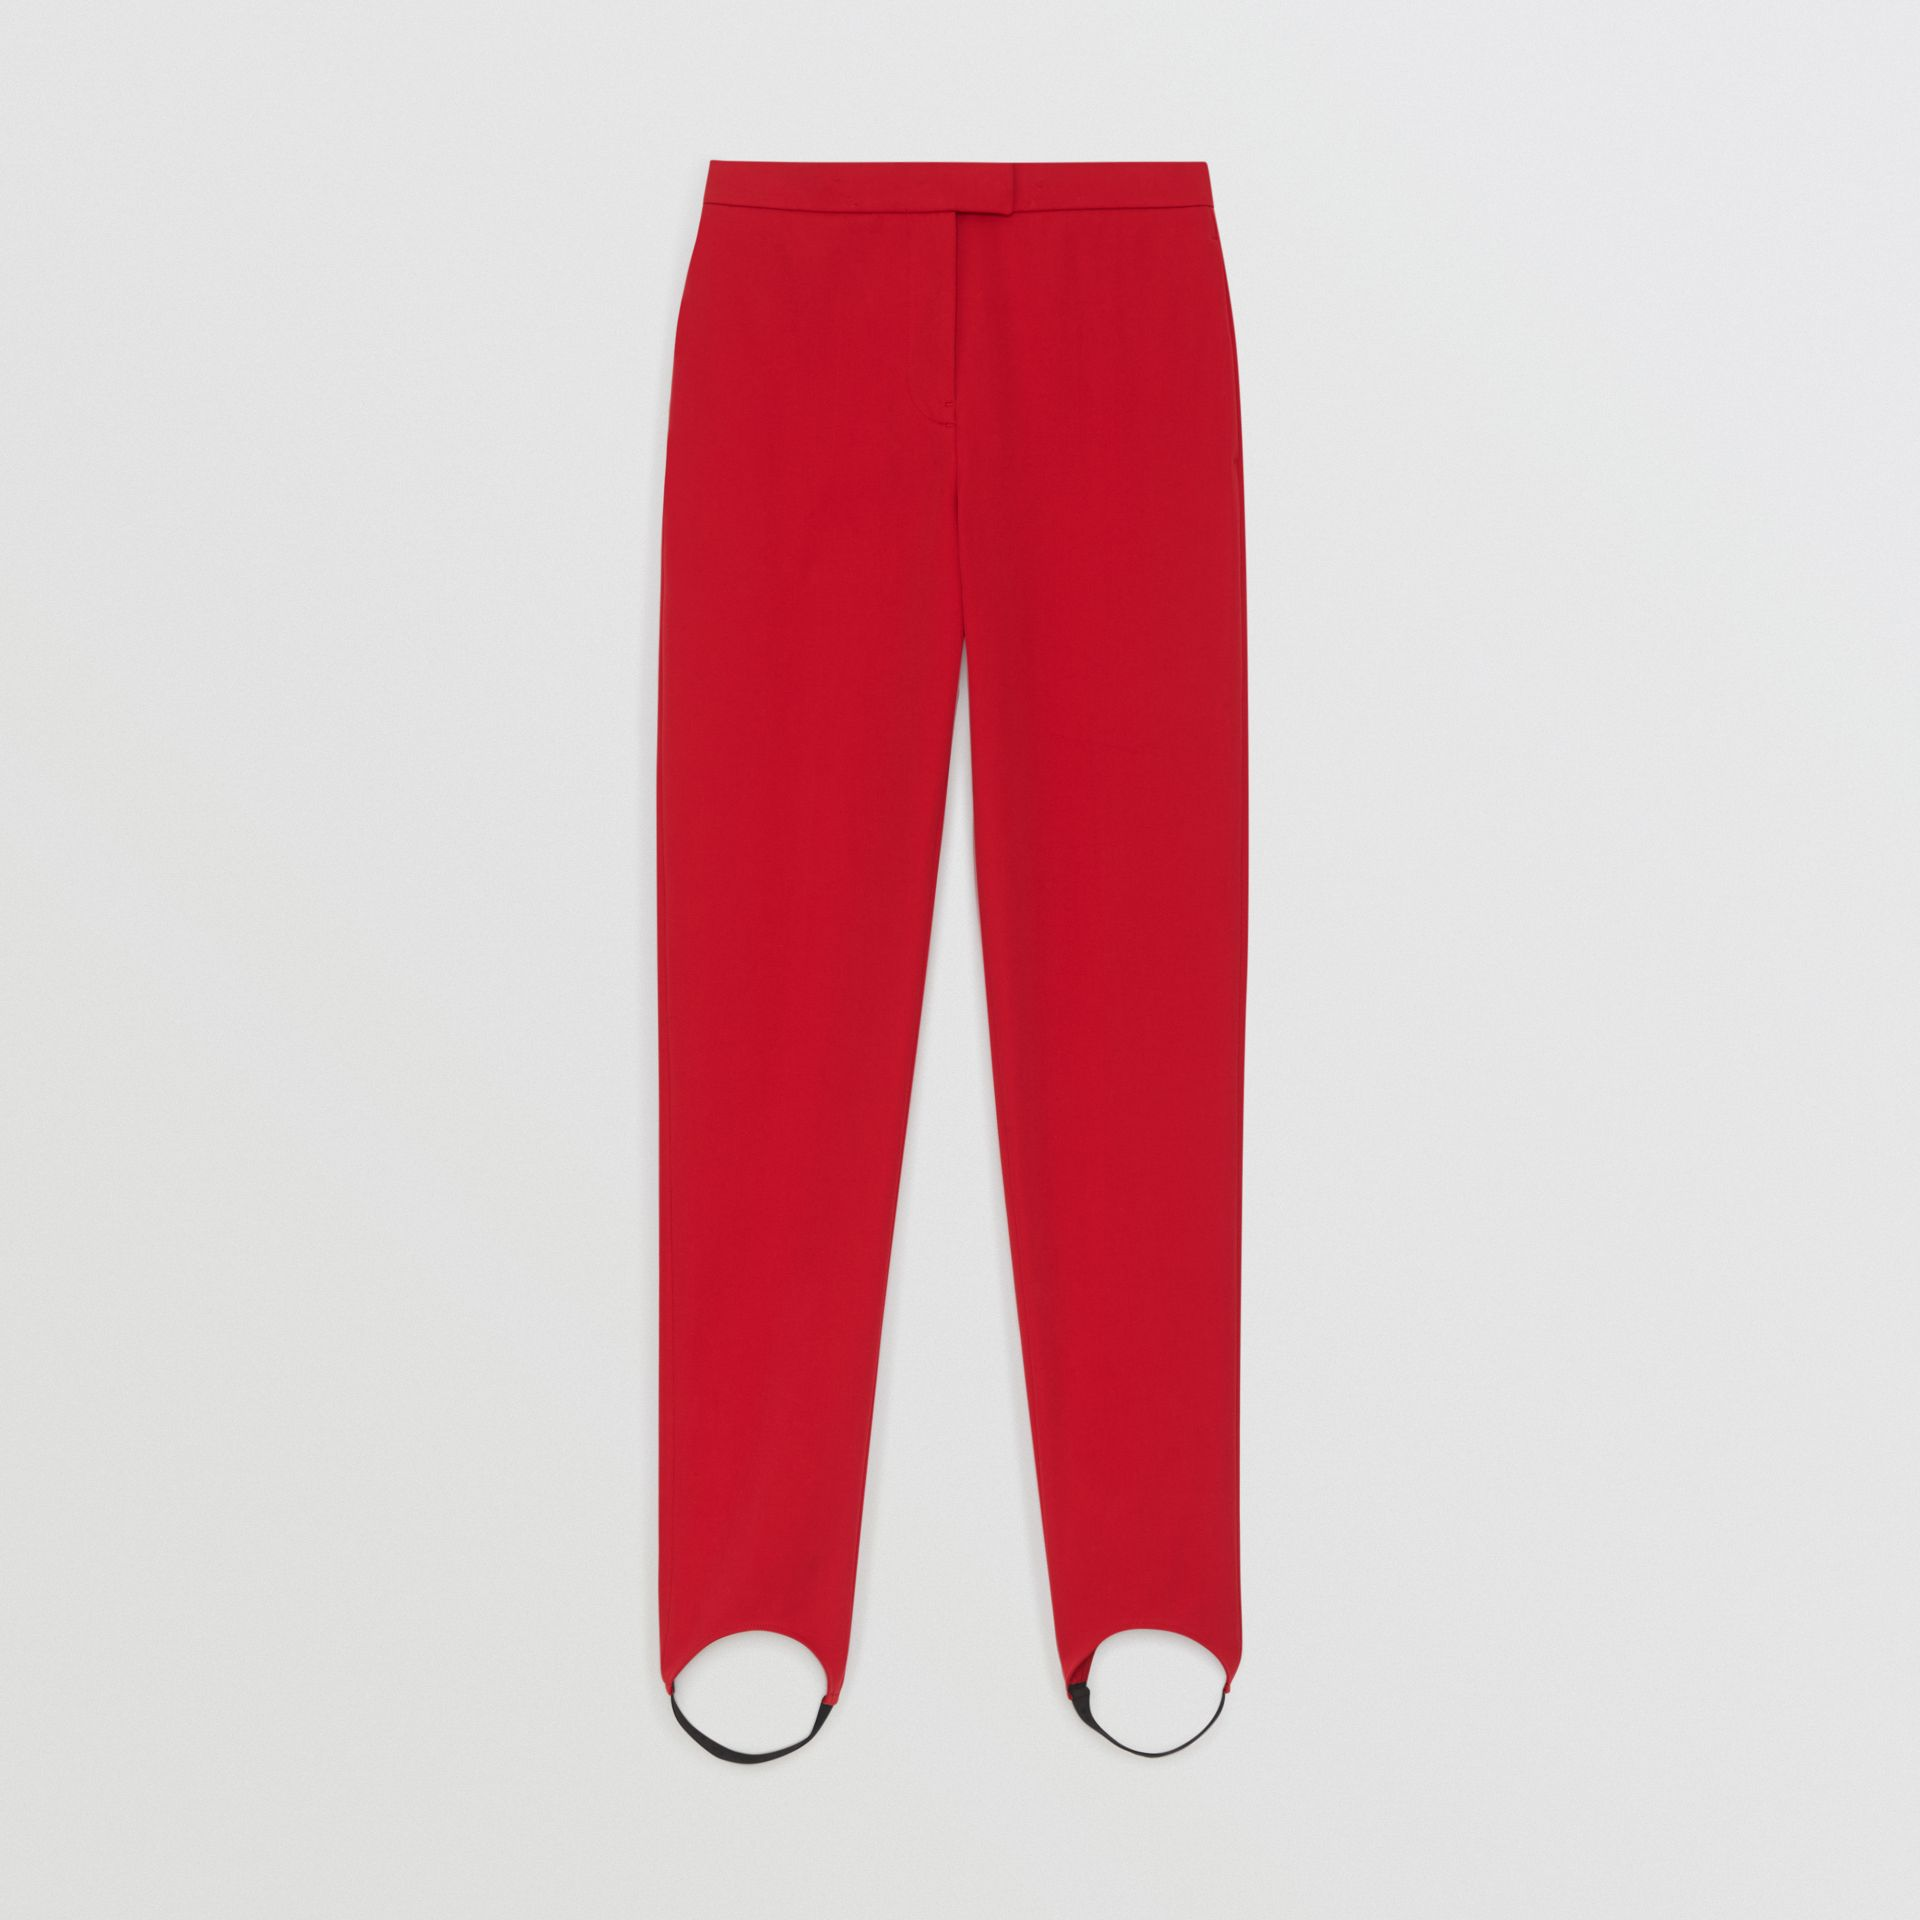 Long Cotton Blend Tailored Jodhpurs in Bright Red - Women | Burberry - gallery image 3